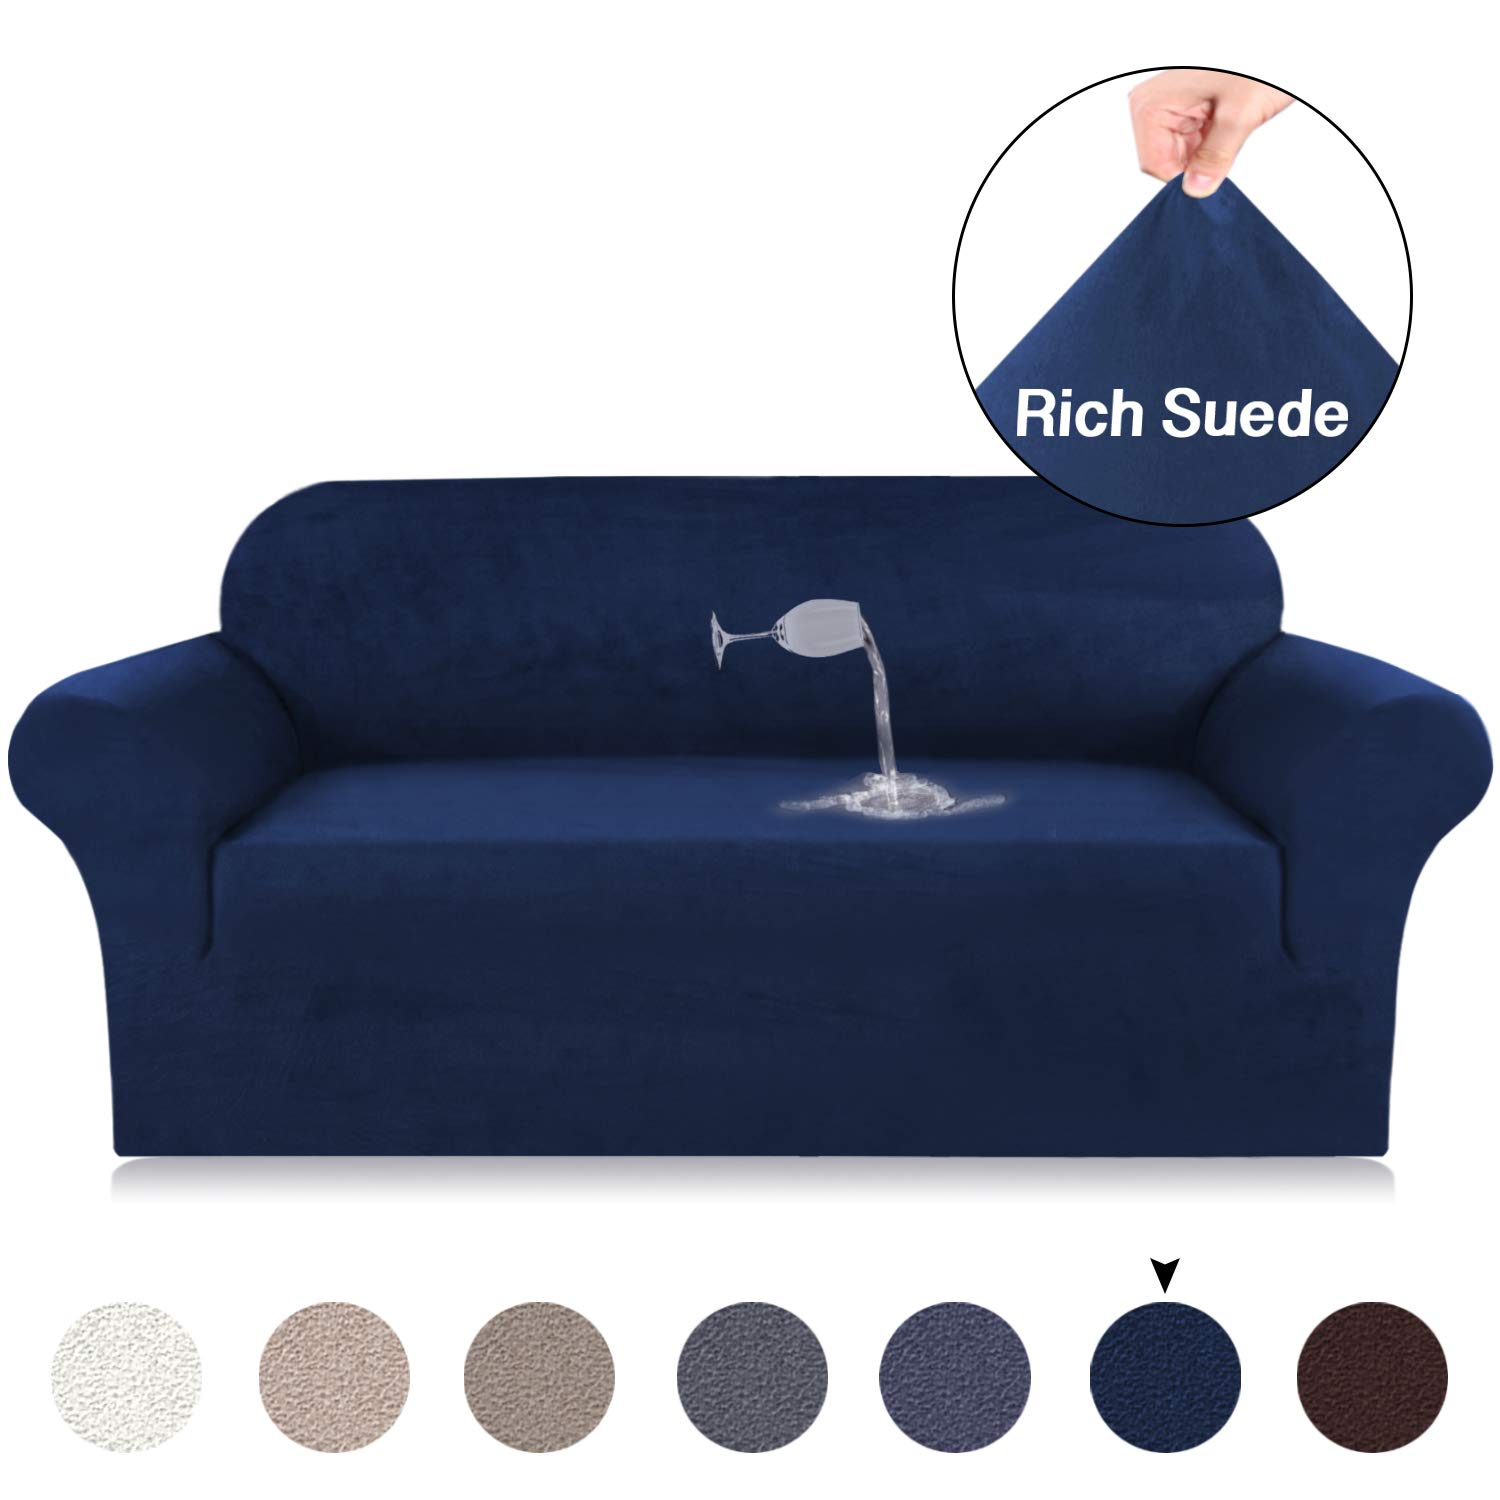 Magnificent Stretch Navy Blue Sofa Covers Spandex Suede Sofa Cover Water Repellent Couch Loveseat Cover 3 Seat Sofa Cover Velvet Plush Suede Furniture Protector Pabps2019 Chair Design Images Pabps2019Com